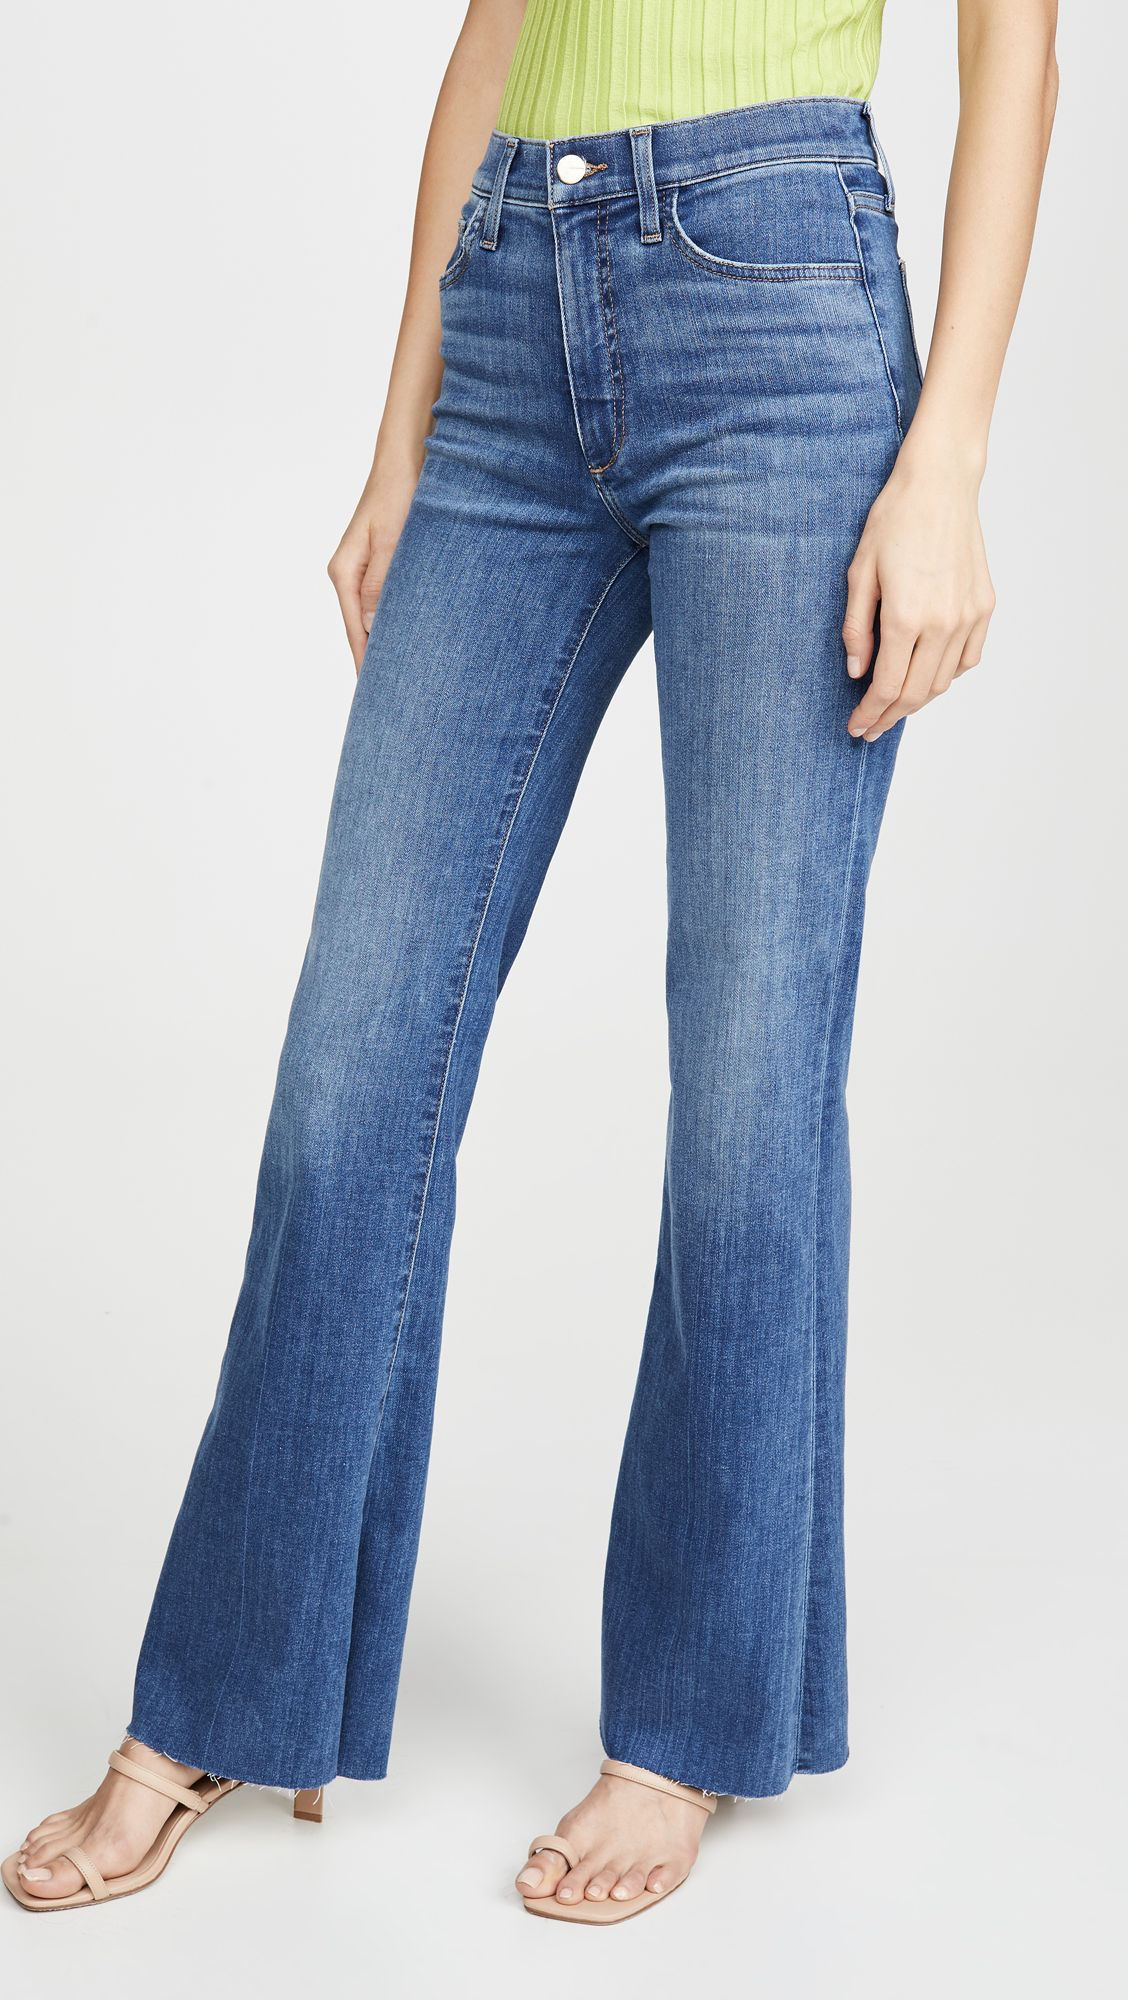 My Friend Asked What to Wear With Flare Jeans, and I Suggested These 6 Basics 11